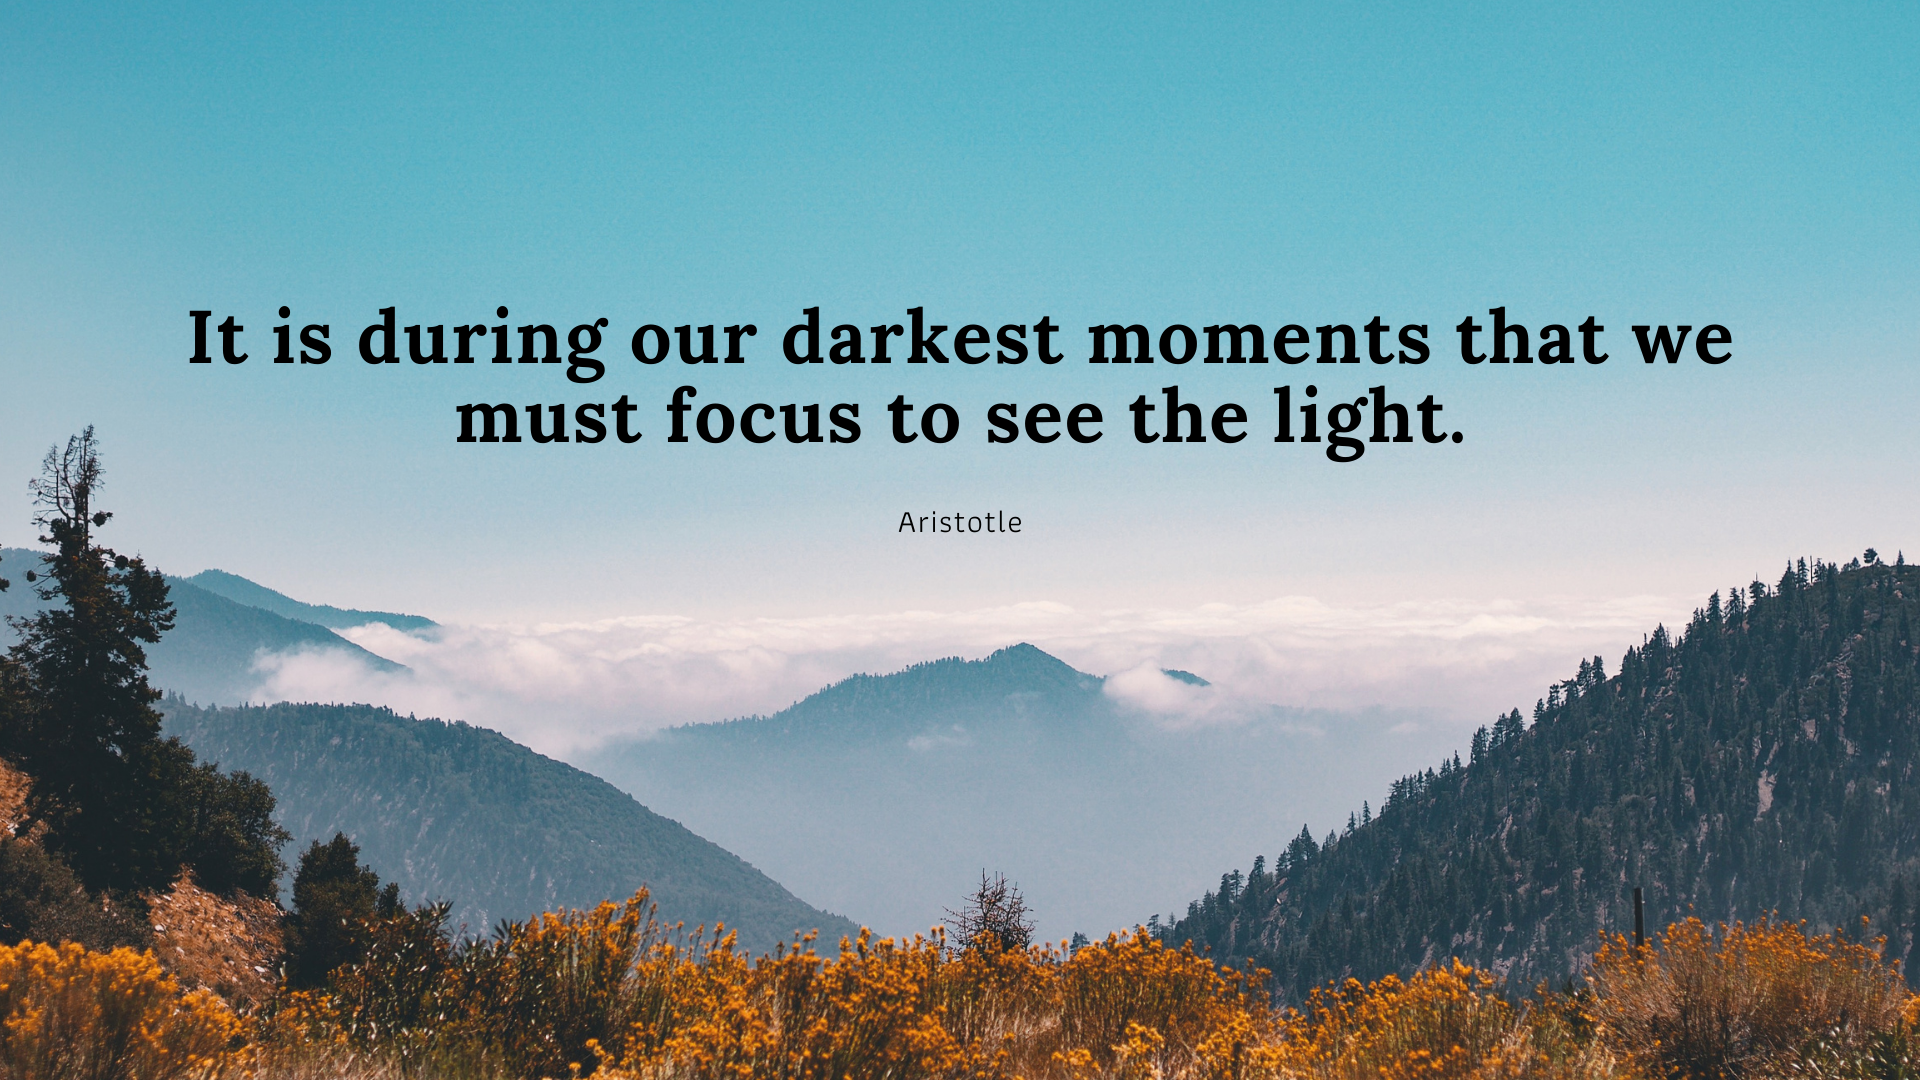 It is during our darkest moments that we must focus to see the light. -Aristotle[1920×1080]